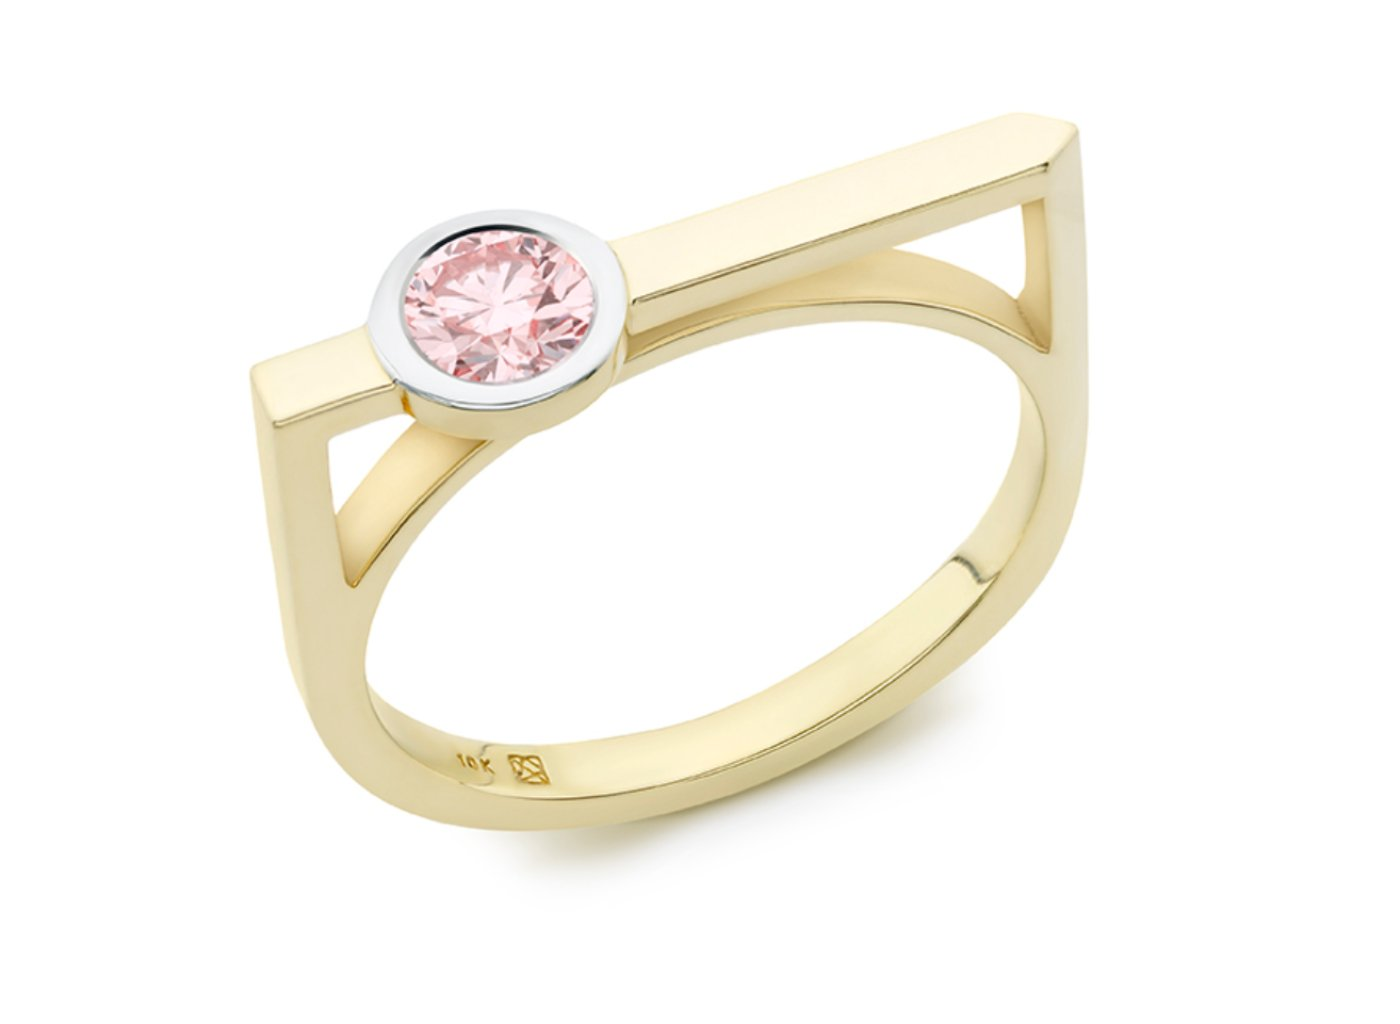 Side view of Solitaire linear 3/8 carat ring with pink diamond